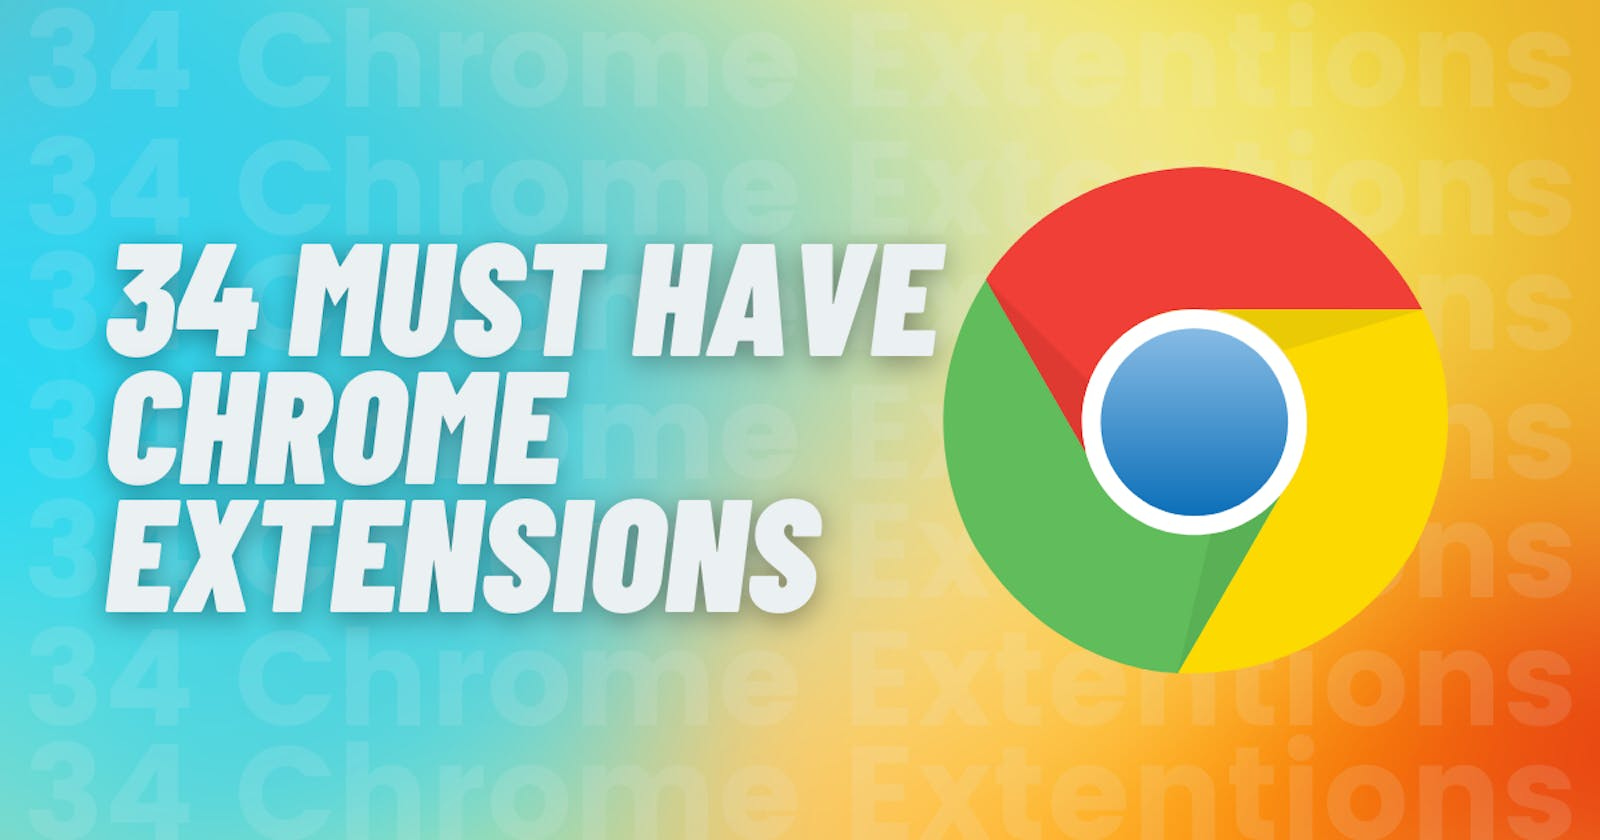 34 Must have Chrome Extensions for Web Developers and Designers